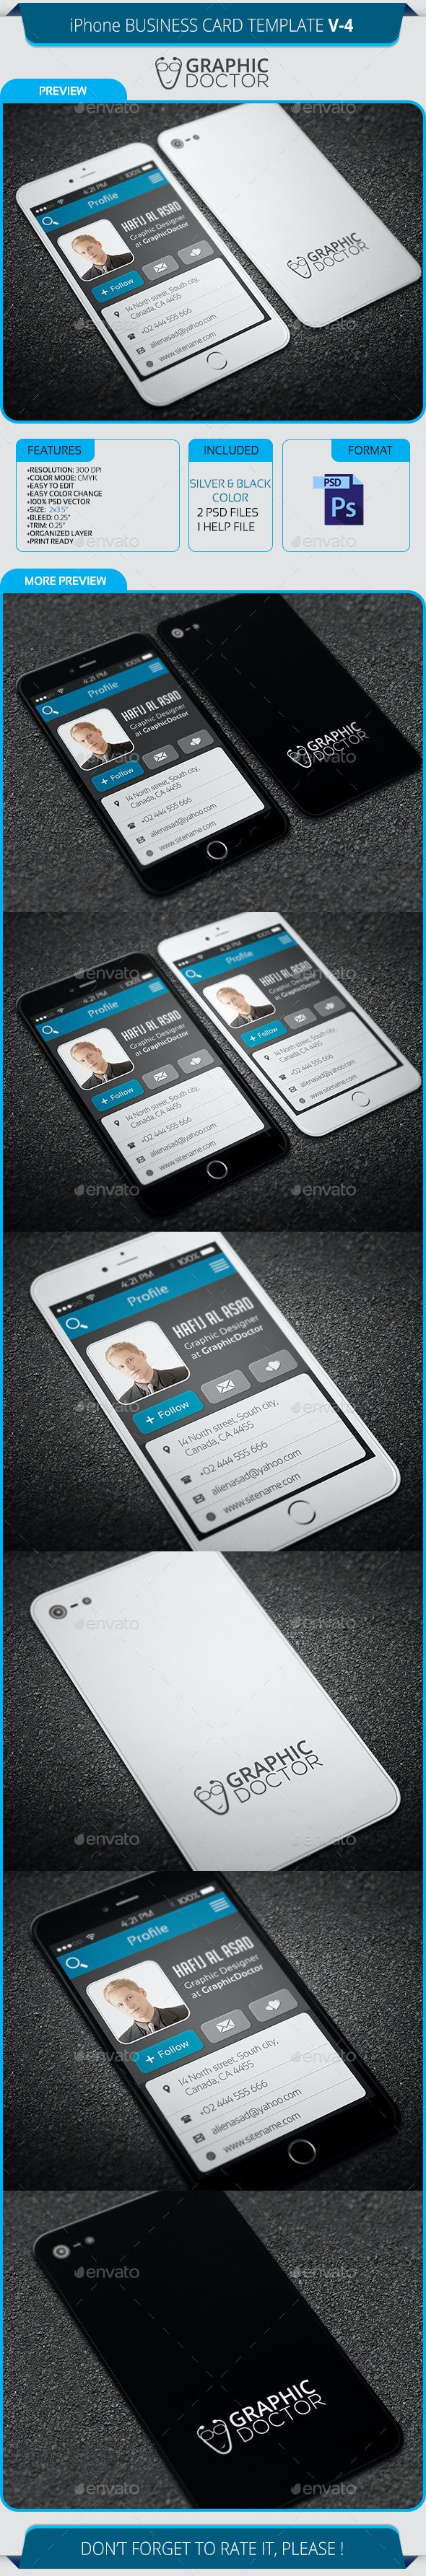 iPhone Business Card Template V-4 - Real Objects Business Cards